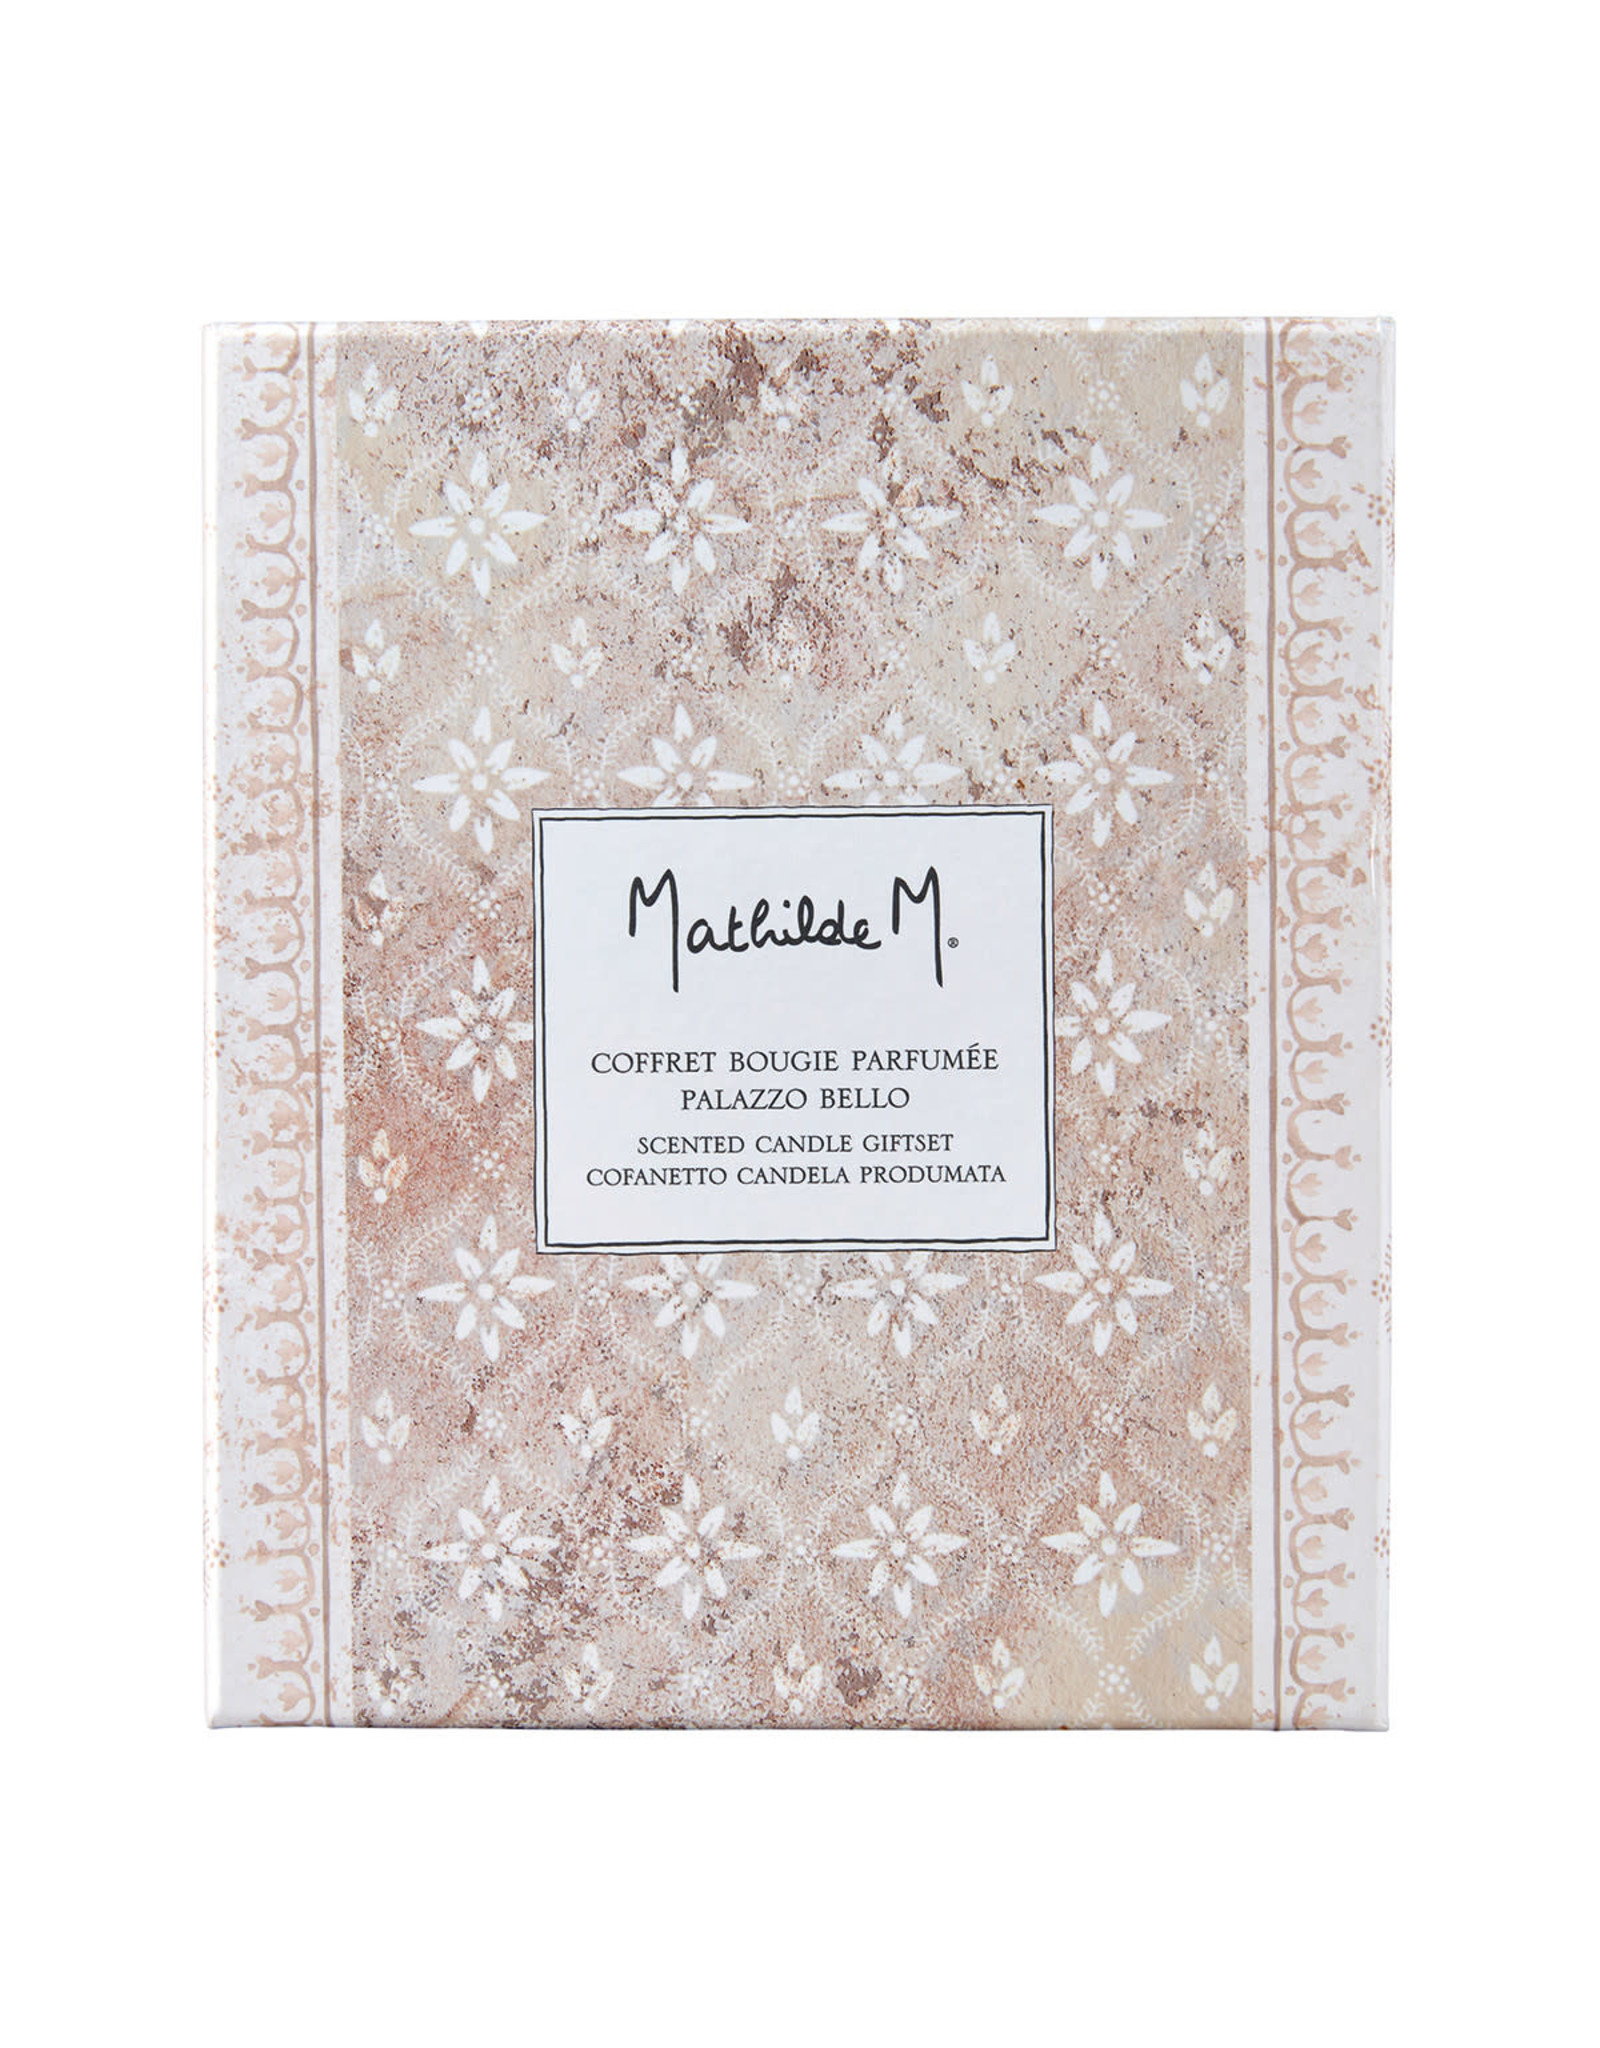 Mathilde M Figuier Dolce - Giftset Palazzo Bello